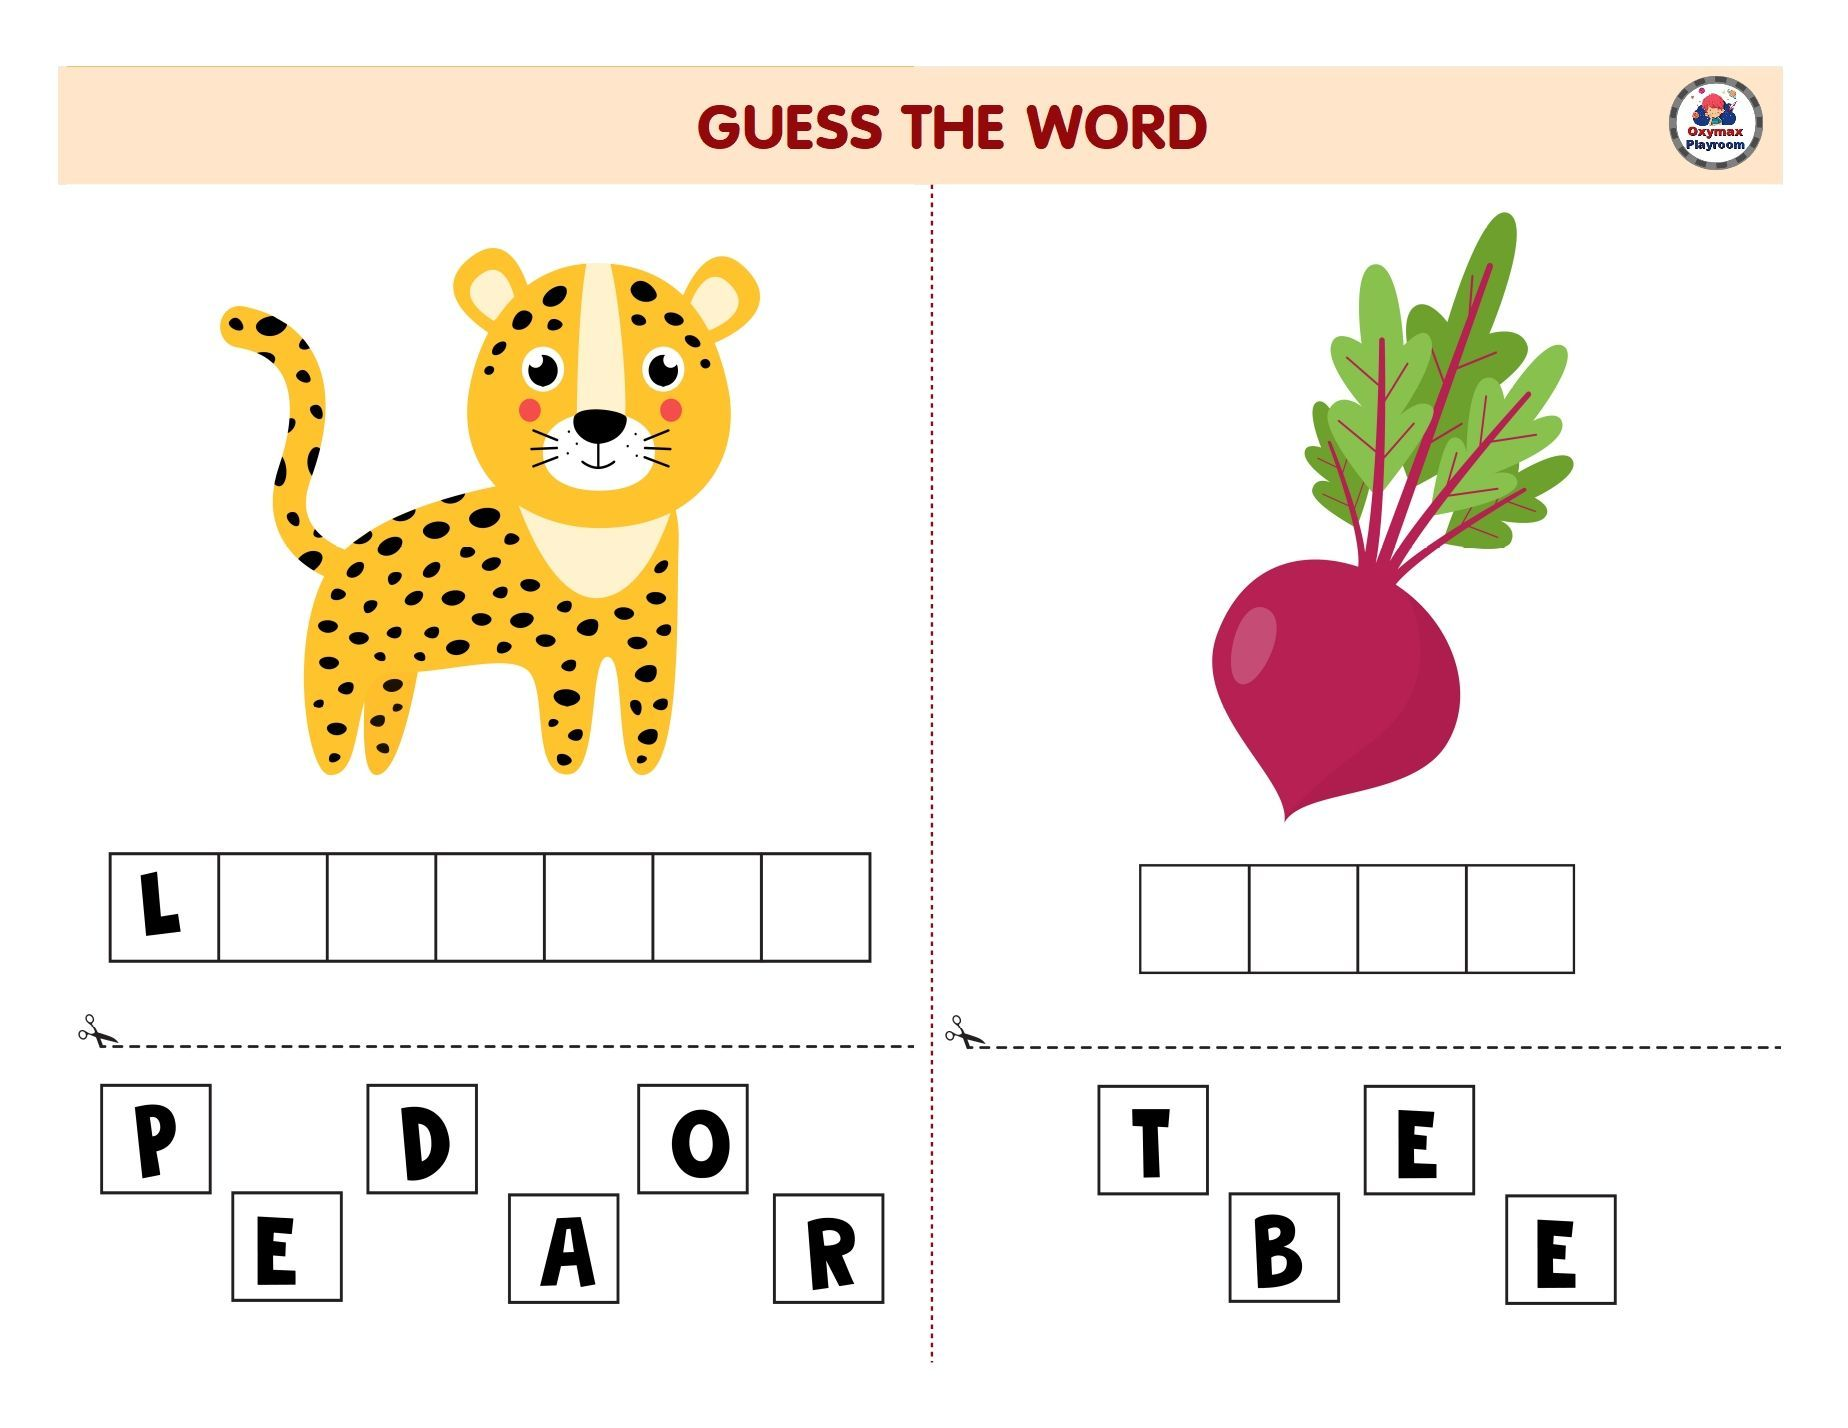 Guess The Word Game For Kids Word Games For Kids Guess The Word Game Word Games